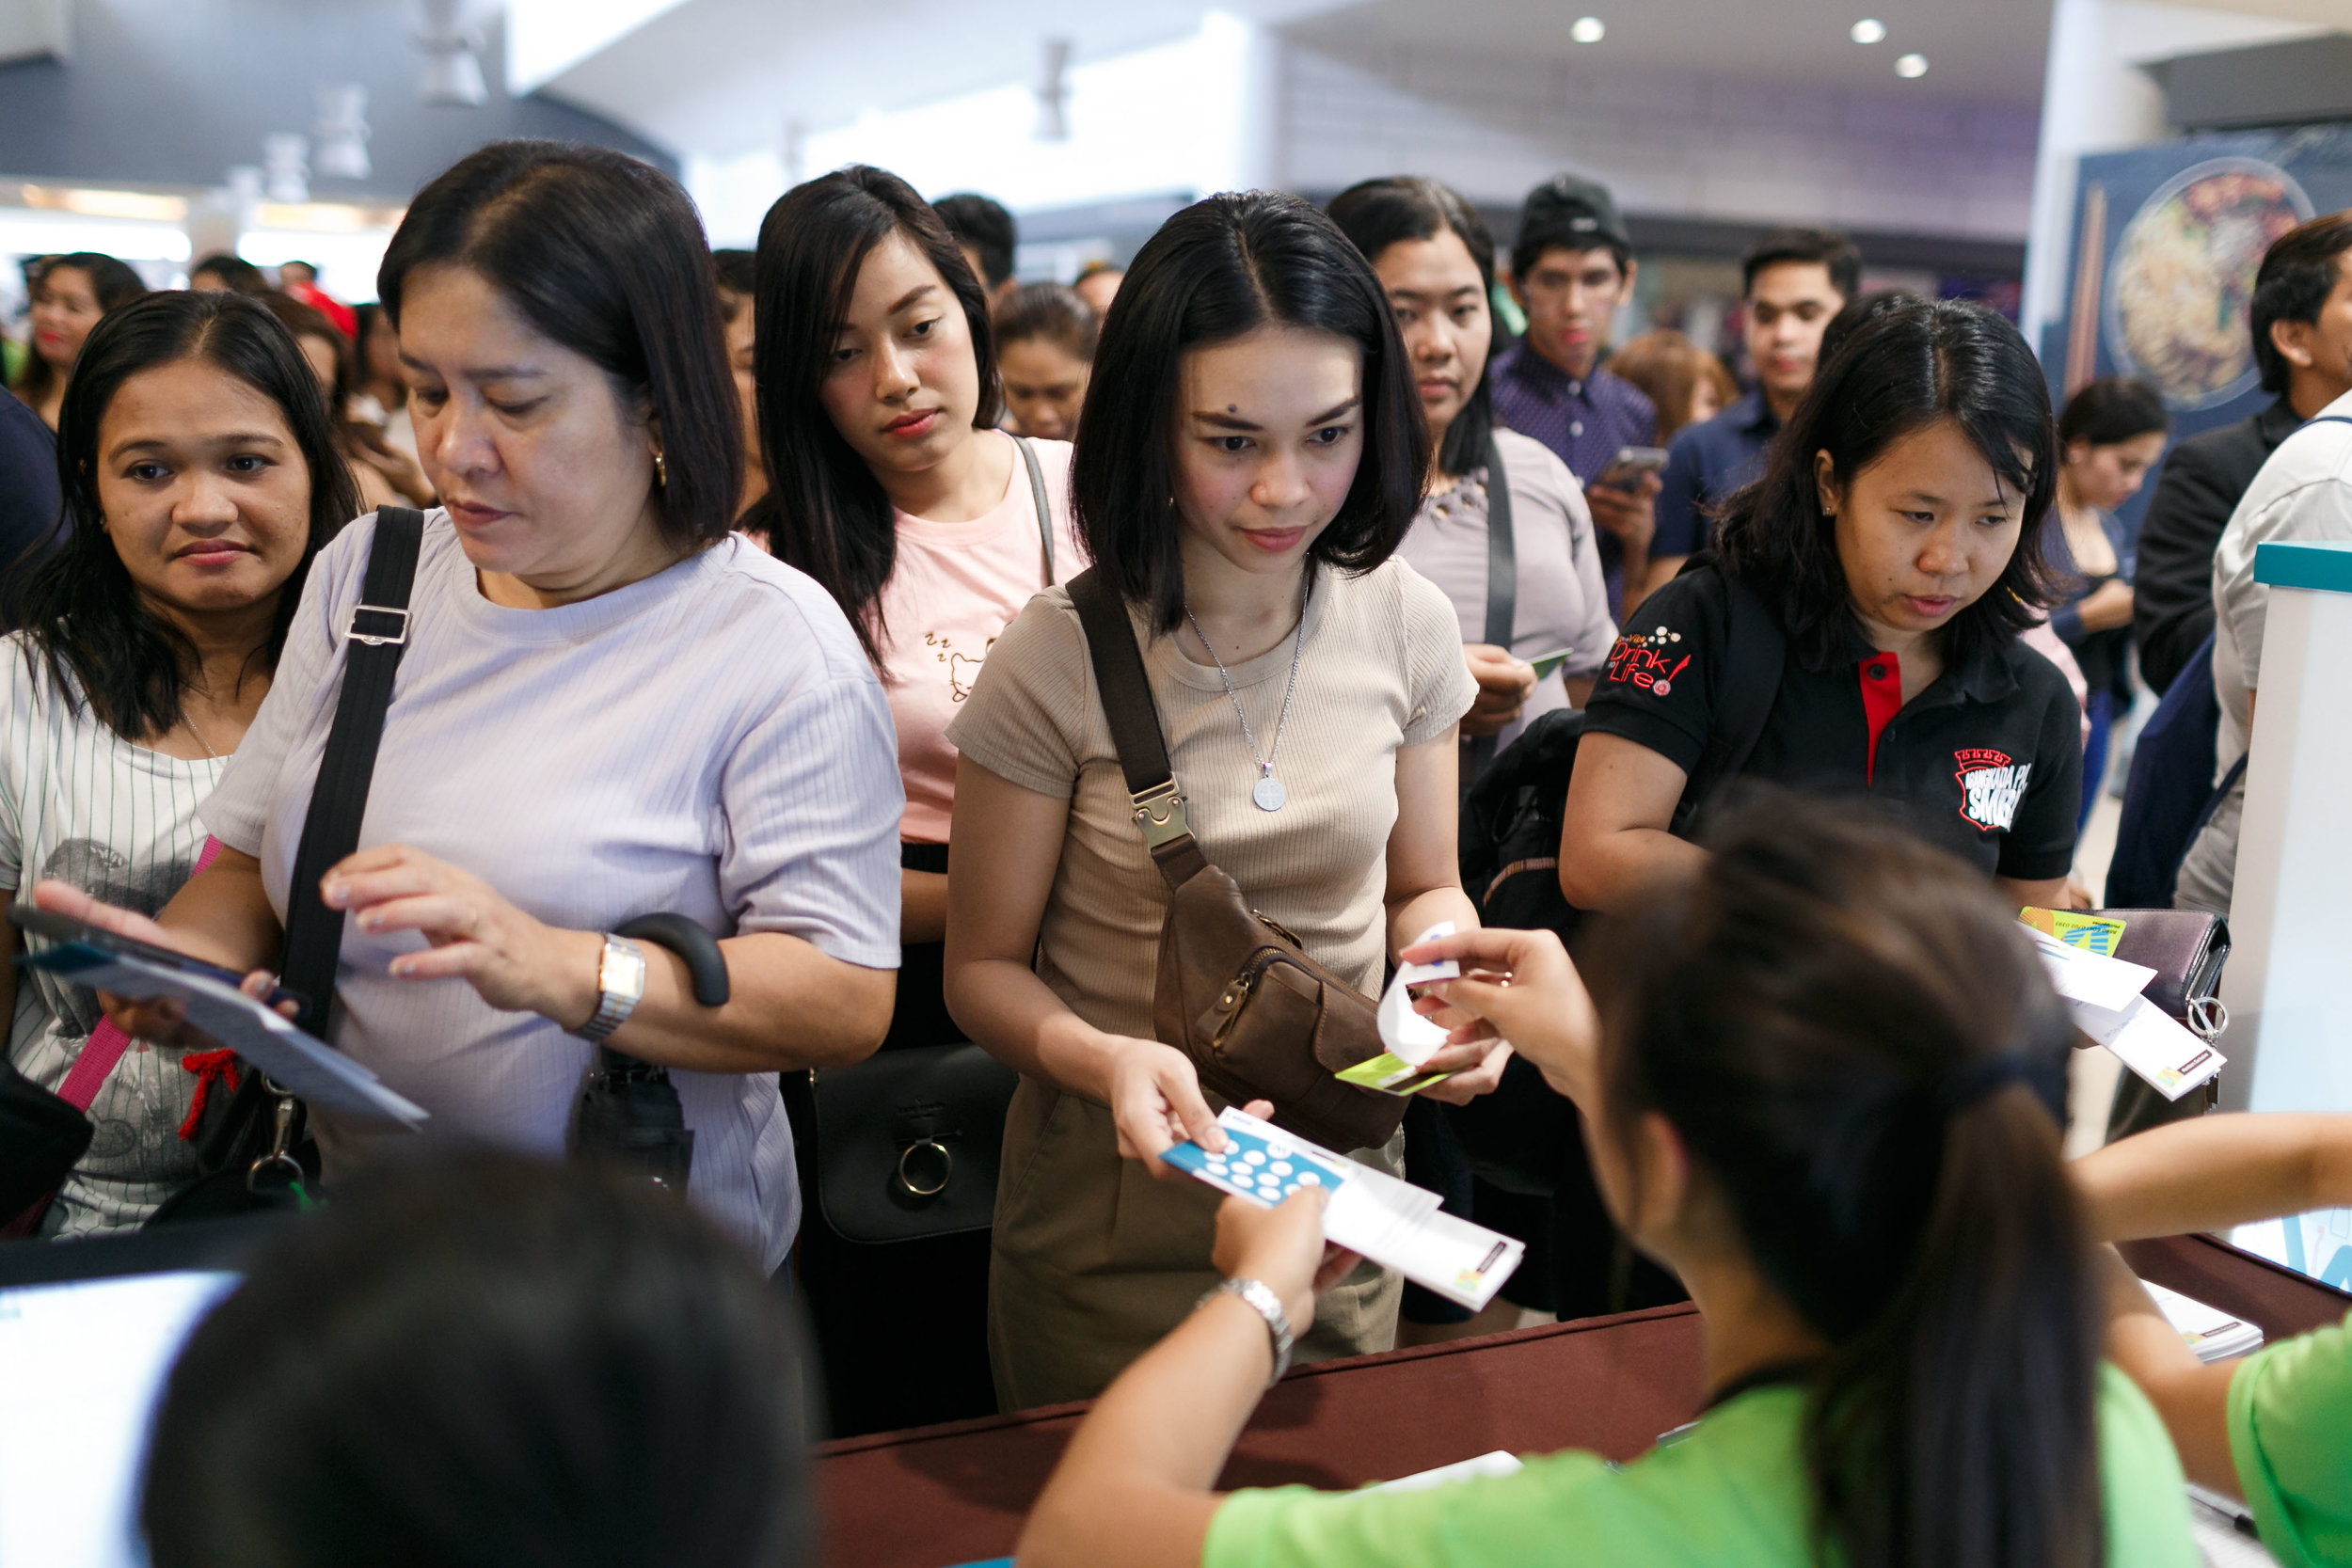 Watsons Card members line up for World of Wellness 2019.jpg